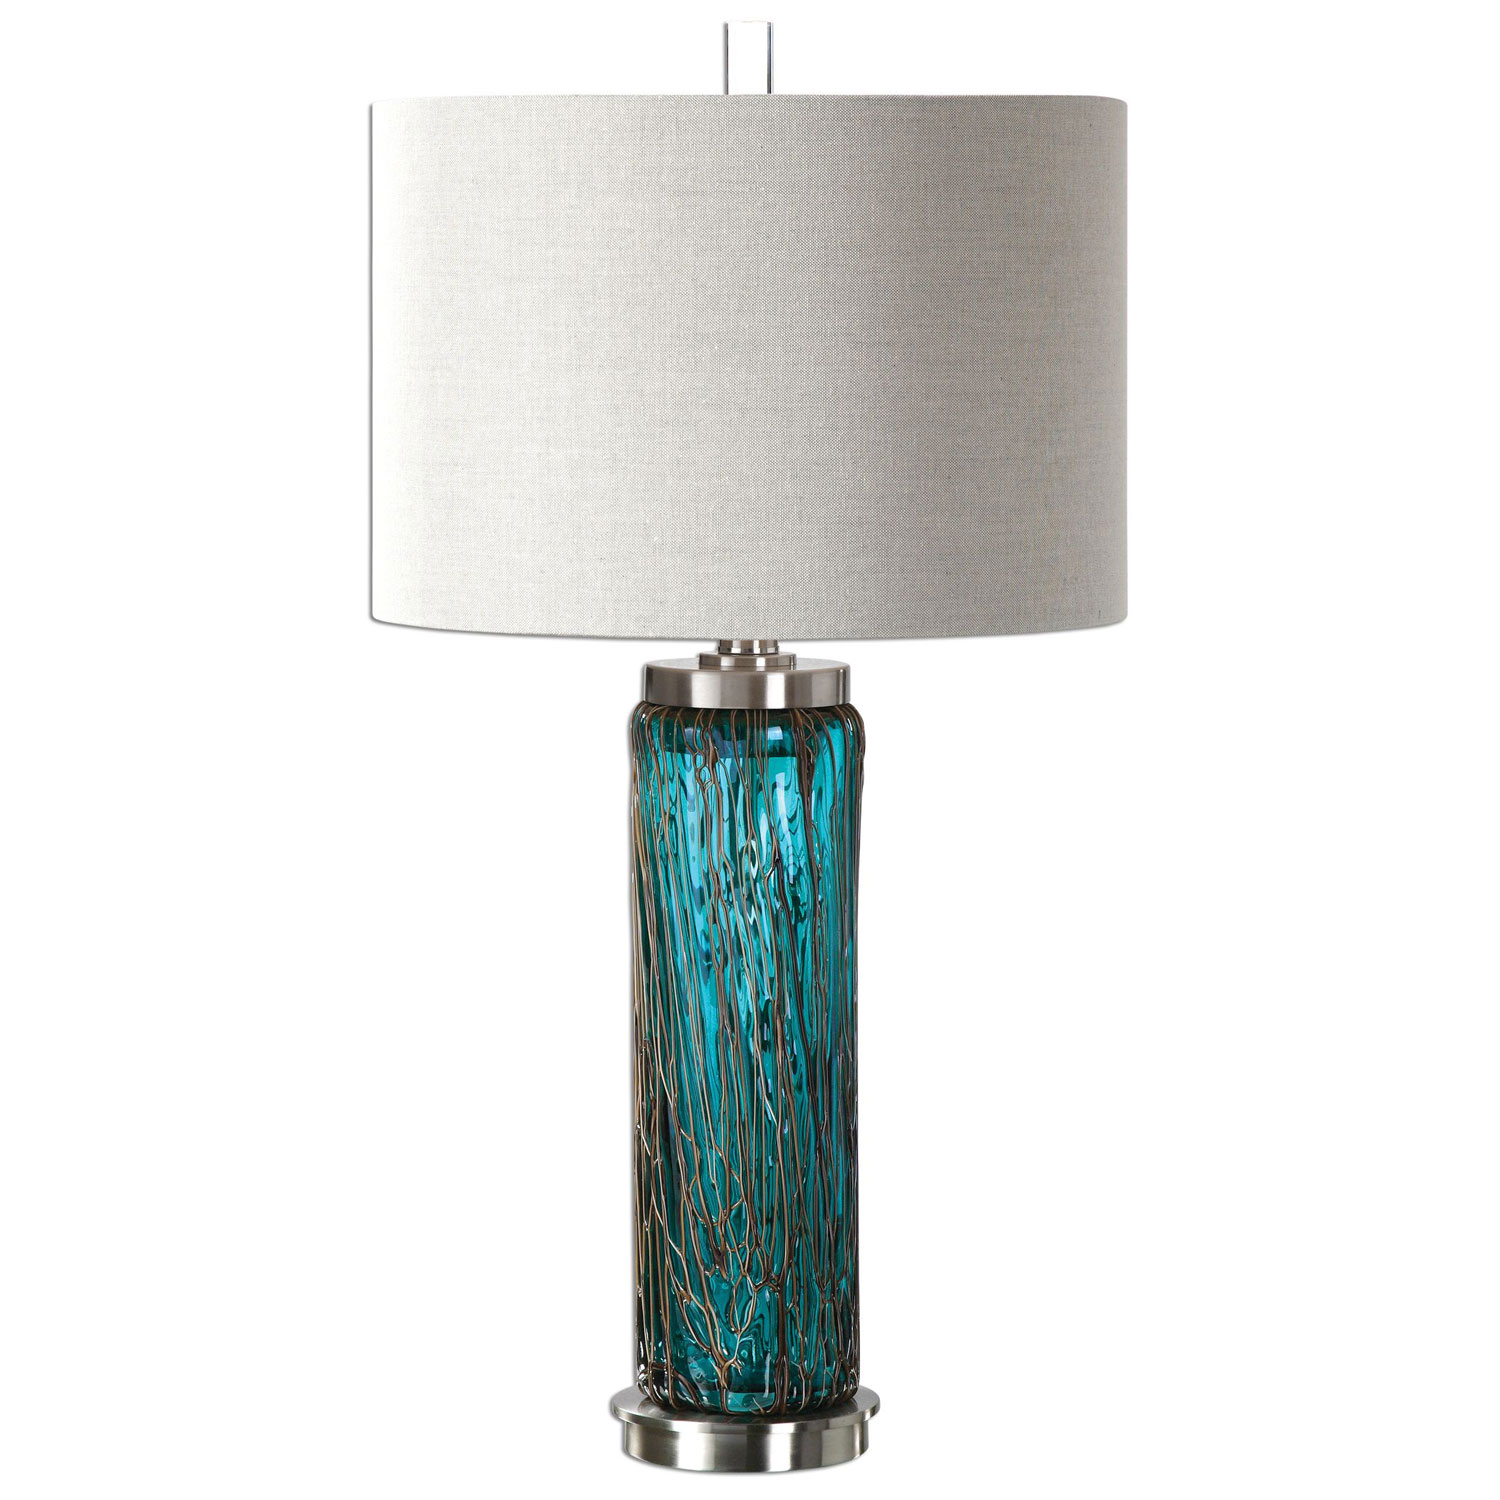 uttermost almanzora blue one light glass table lamp bellacor accent lamps contemporary hover zoom butterfly bedside metal dining room chairs display cabinet black wicker outdoor